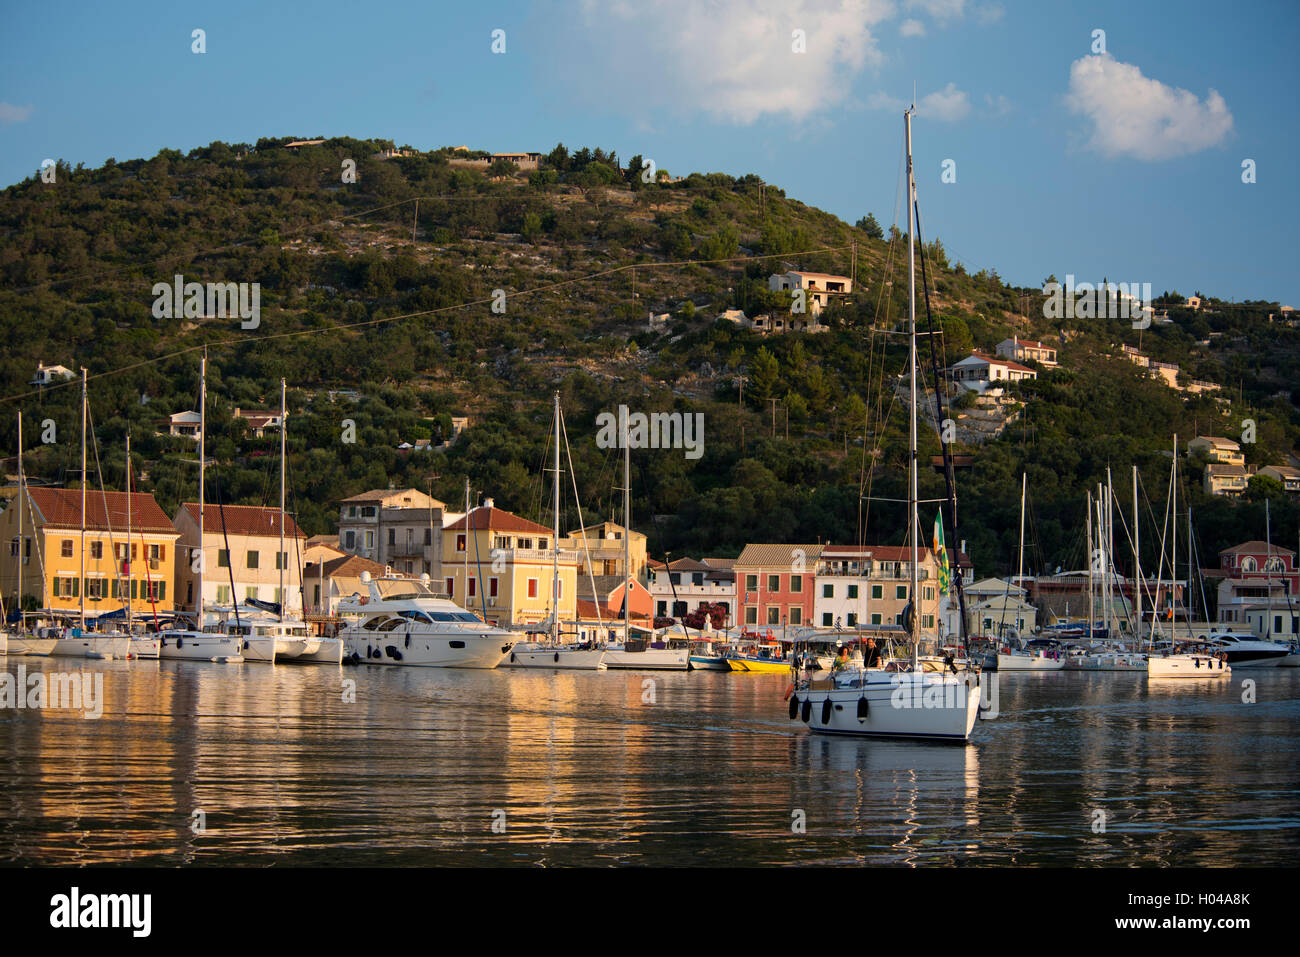 A sailing boat leaving Gaios harbour at sunrise. Paxos, The Ionian Islands, The Greek Islands, Greece, Europe - Stock Image